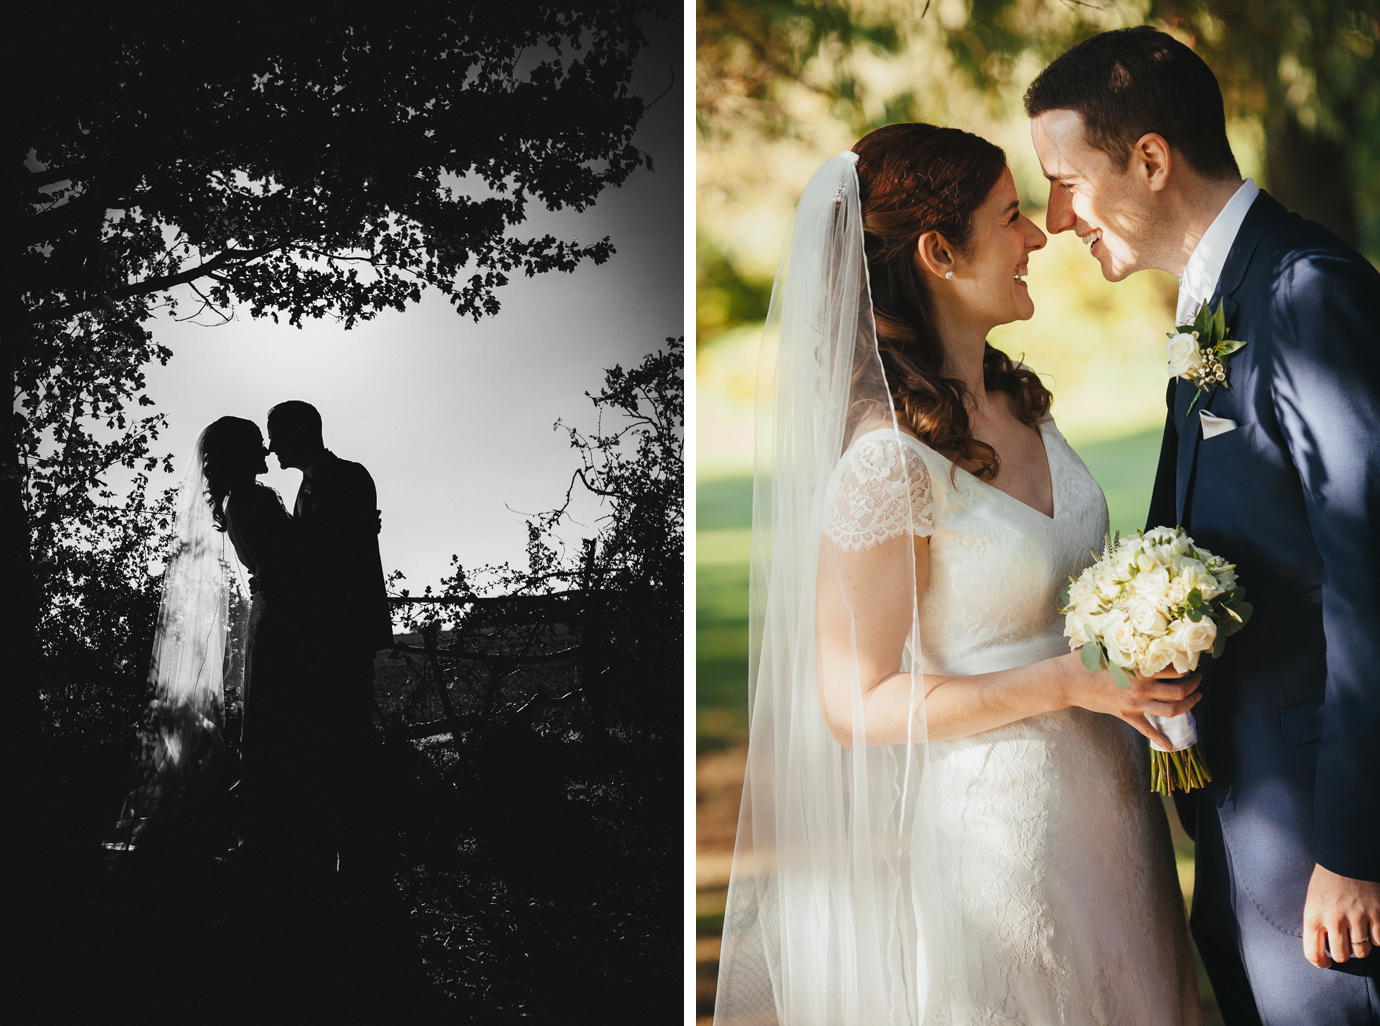 Beautiful light couples wedding portraits silhouette and relaxed